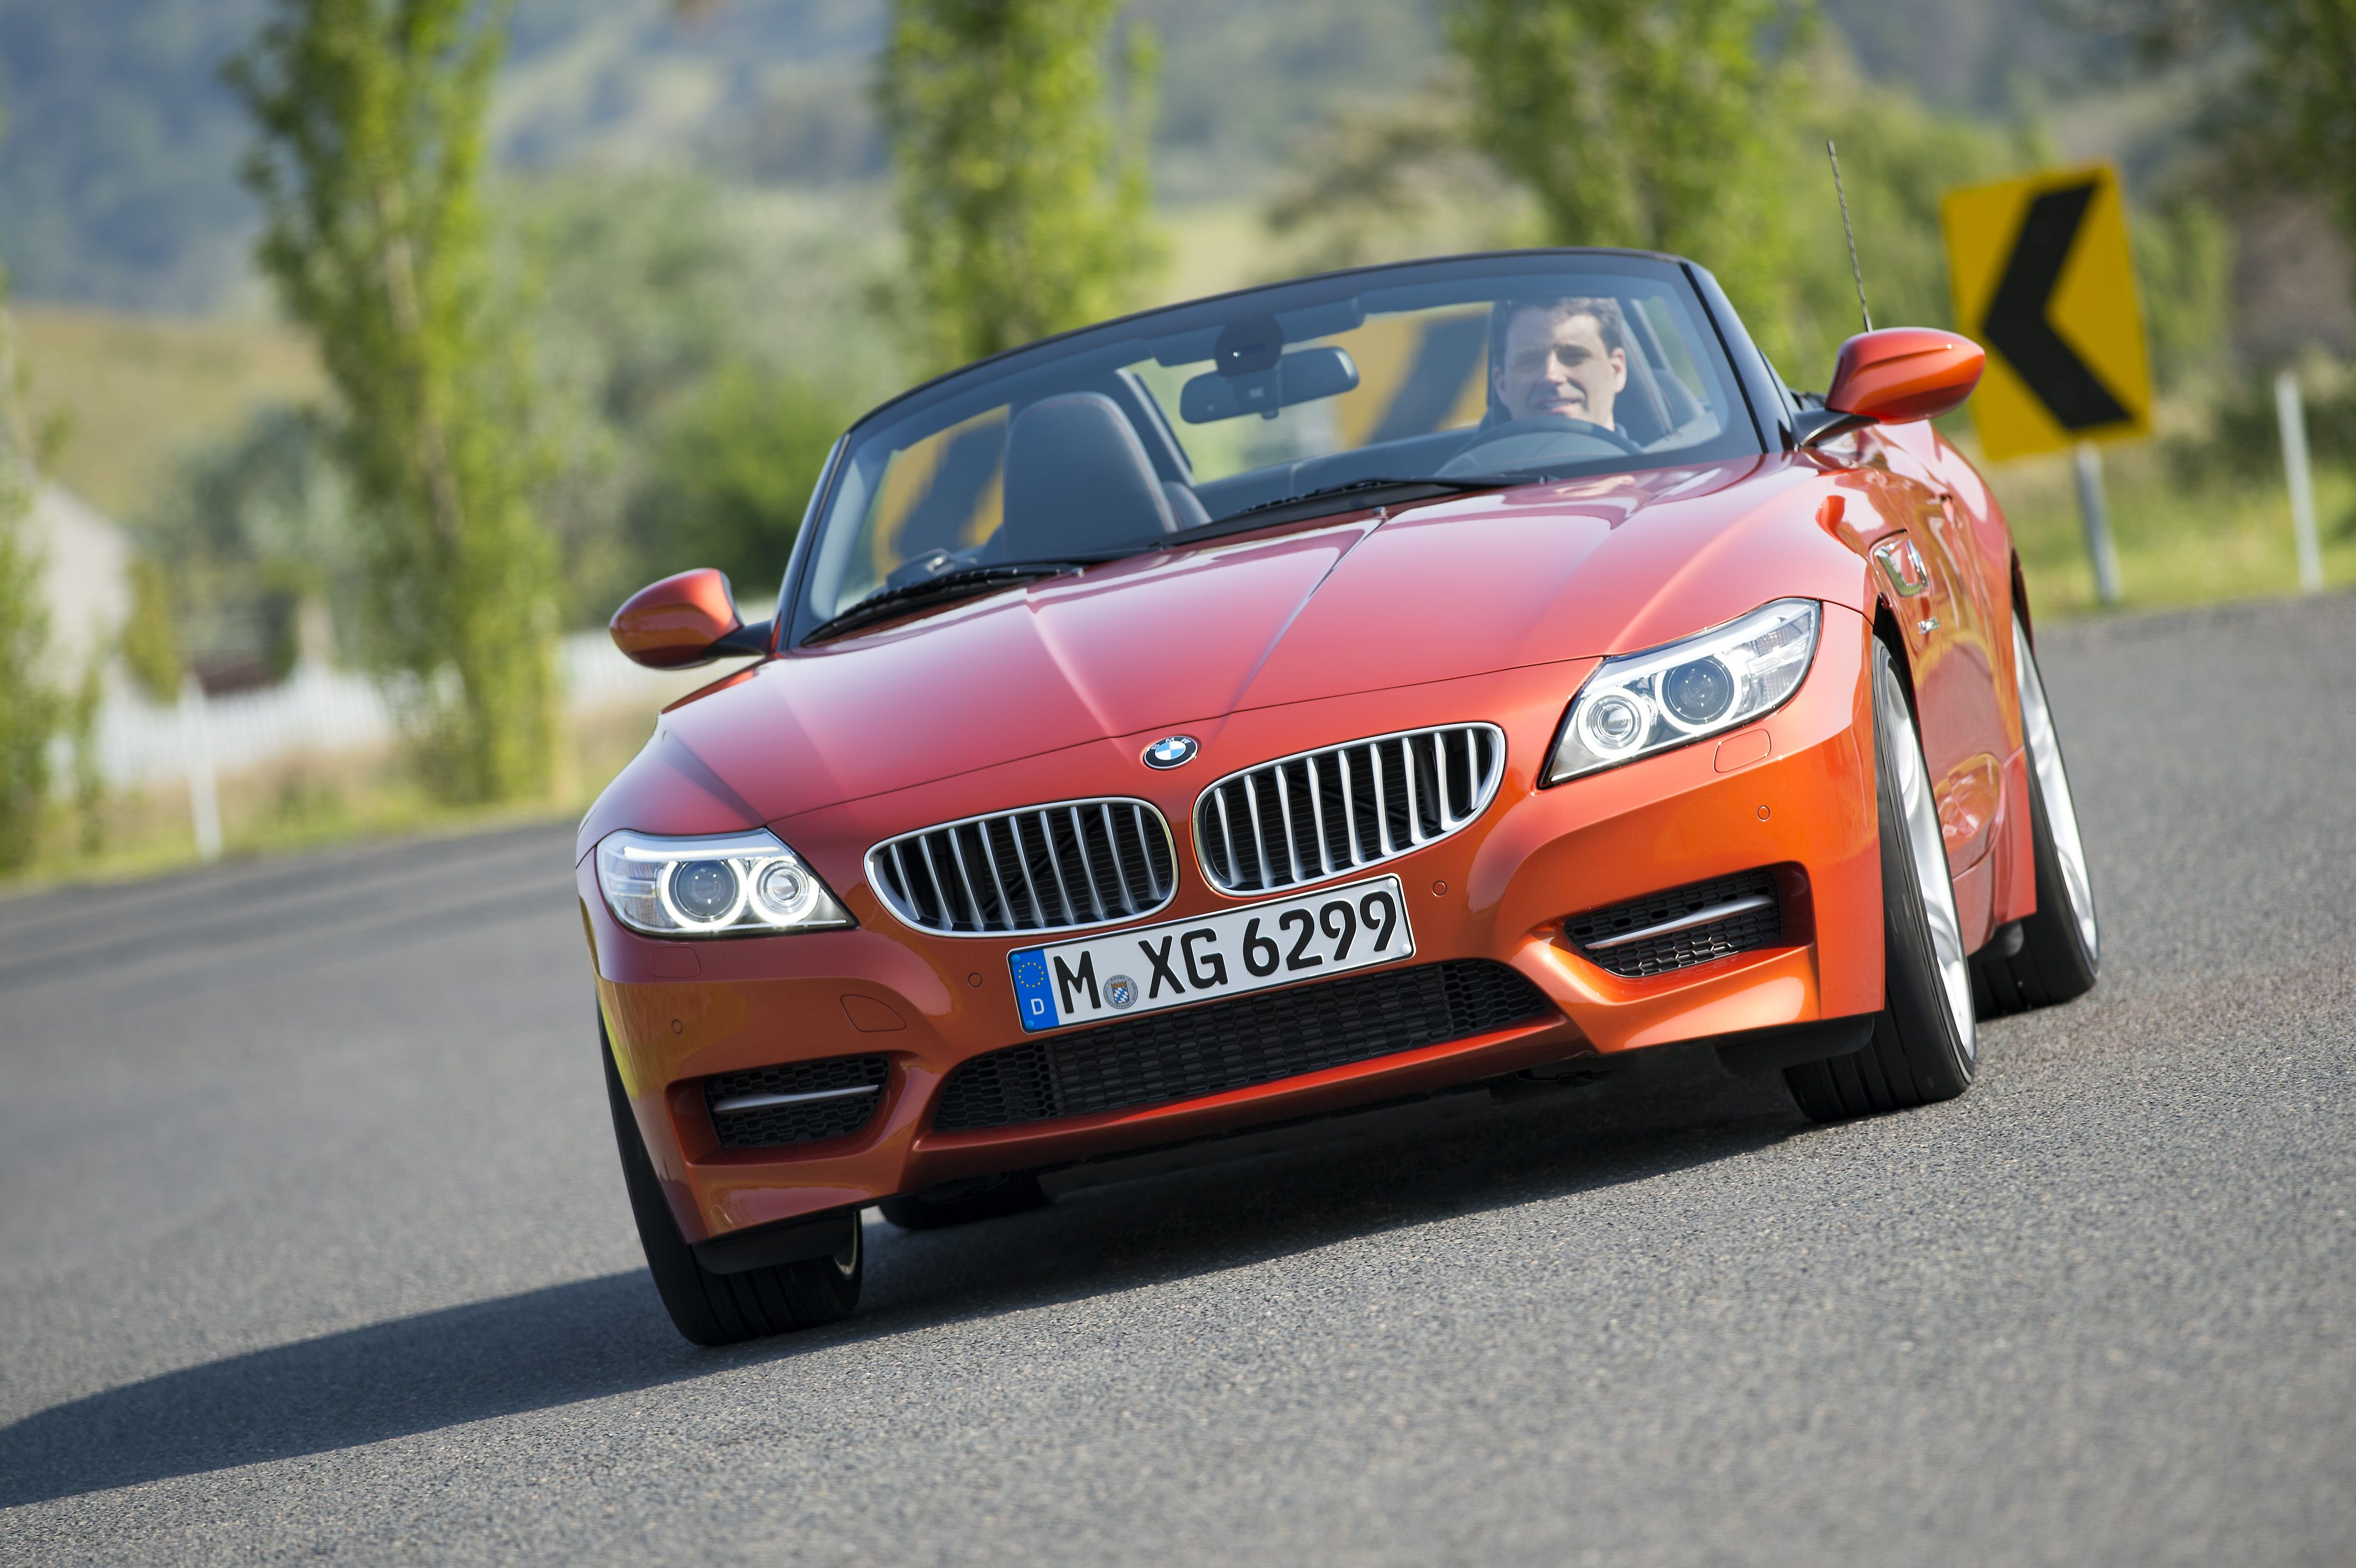 used in astounding with plus cars va bmw for sale car choices alexandria